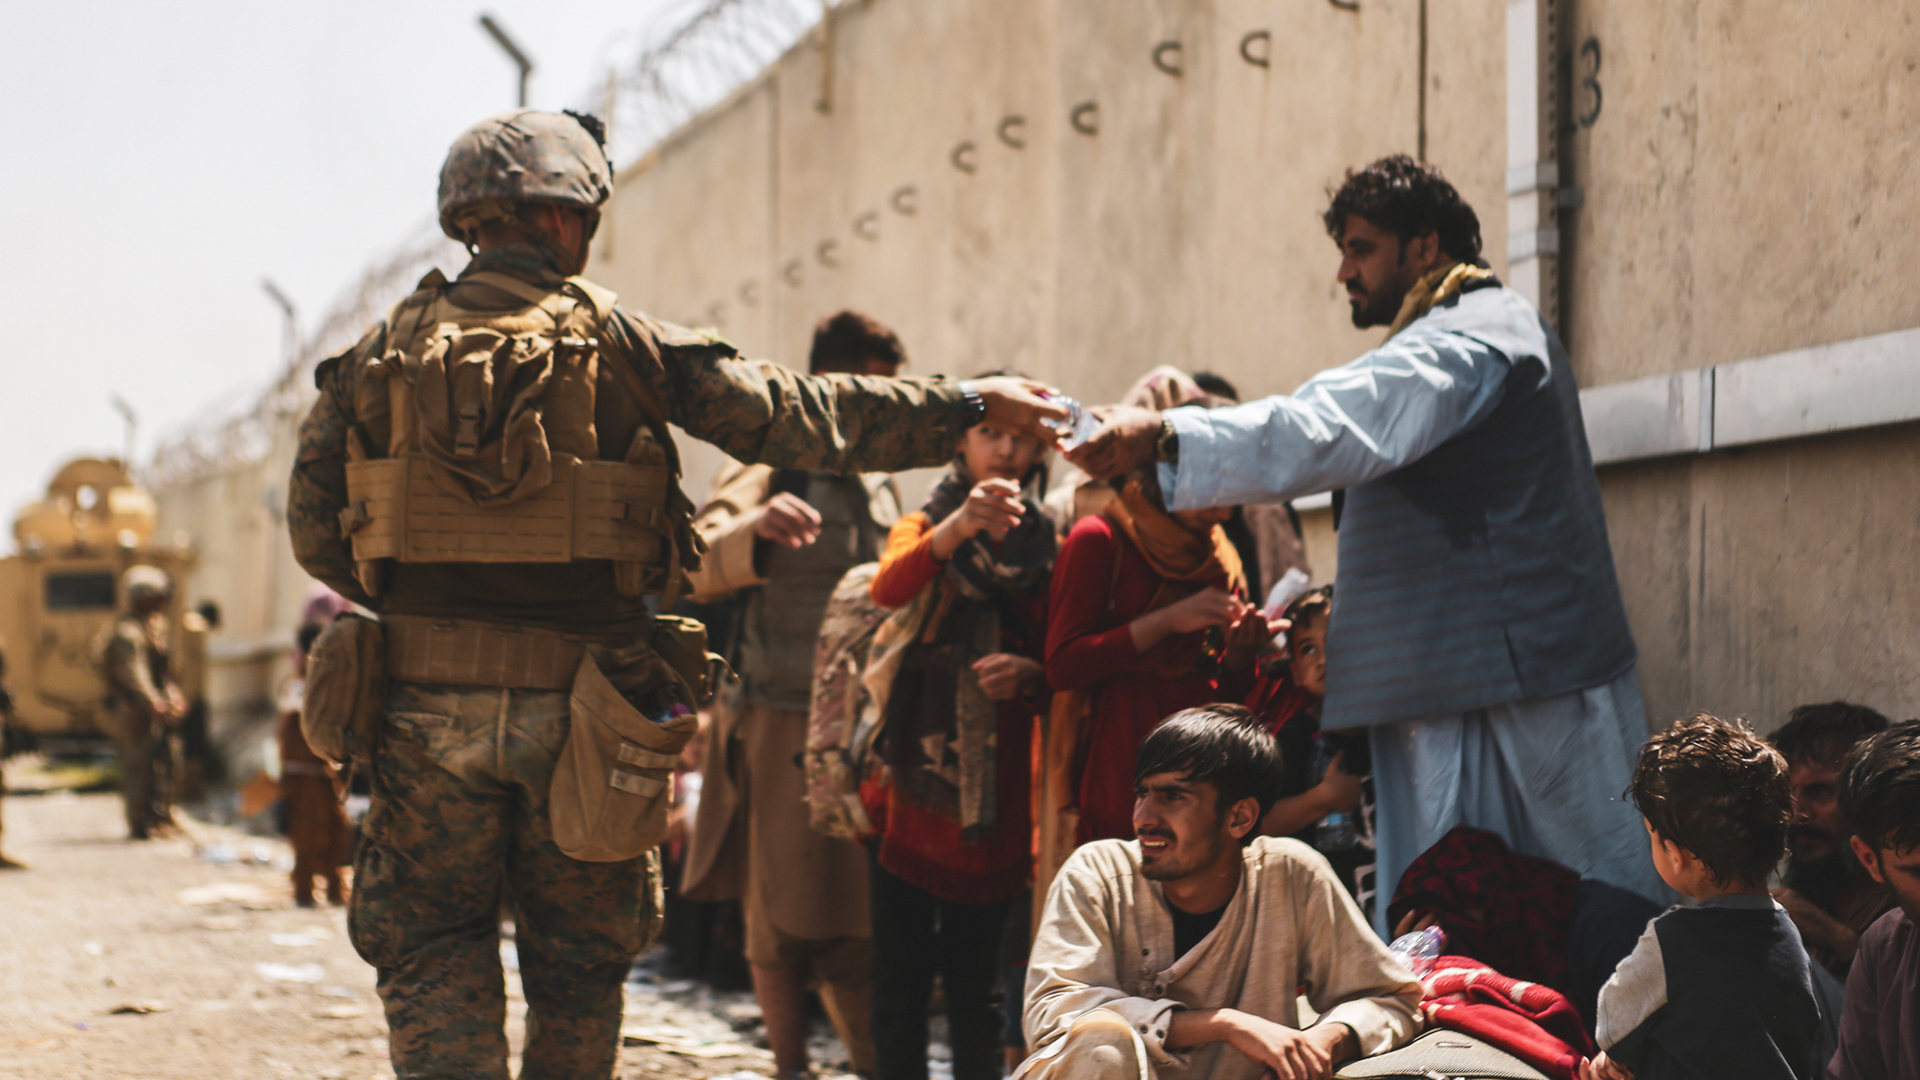 Leave Afghanistan By Aug. 31: Taliban Hands Ultimatum To United States